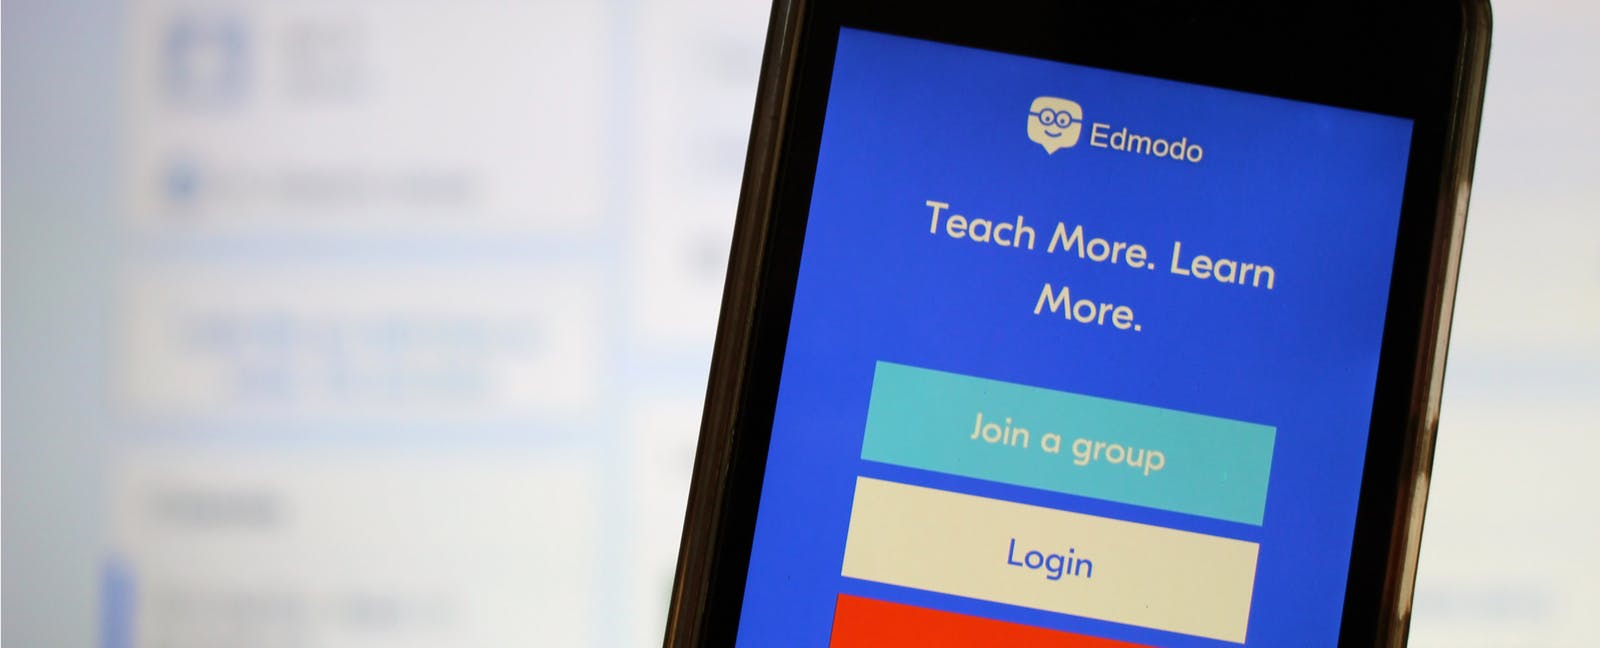 Drinking, Smoking and Sugar: How Unsavory Ads Wound Up on Edmodo